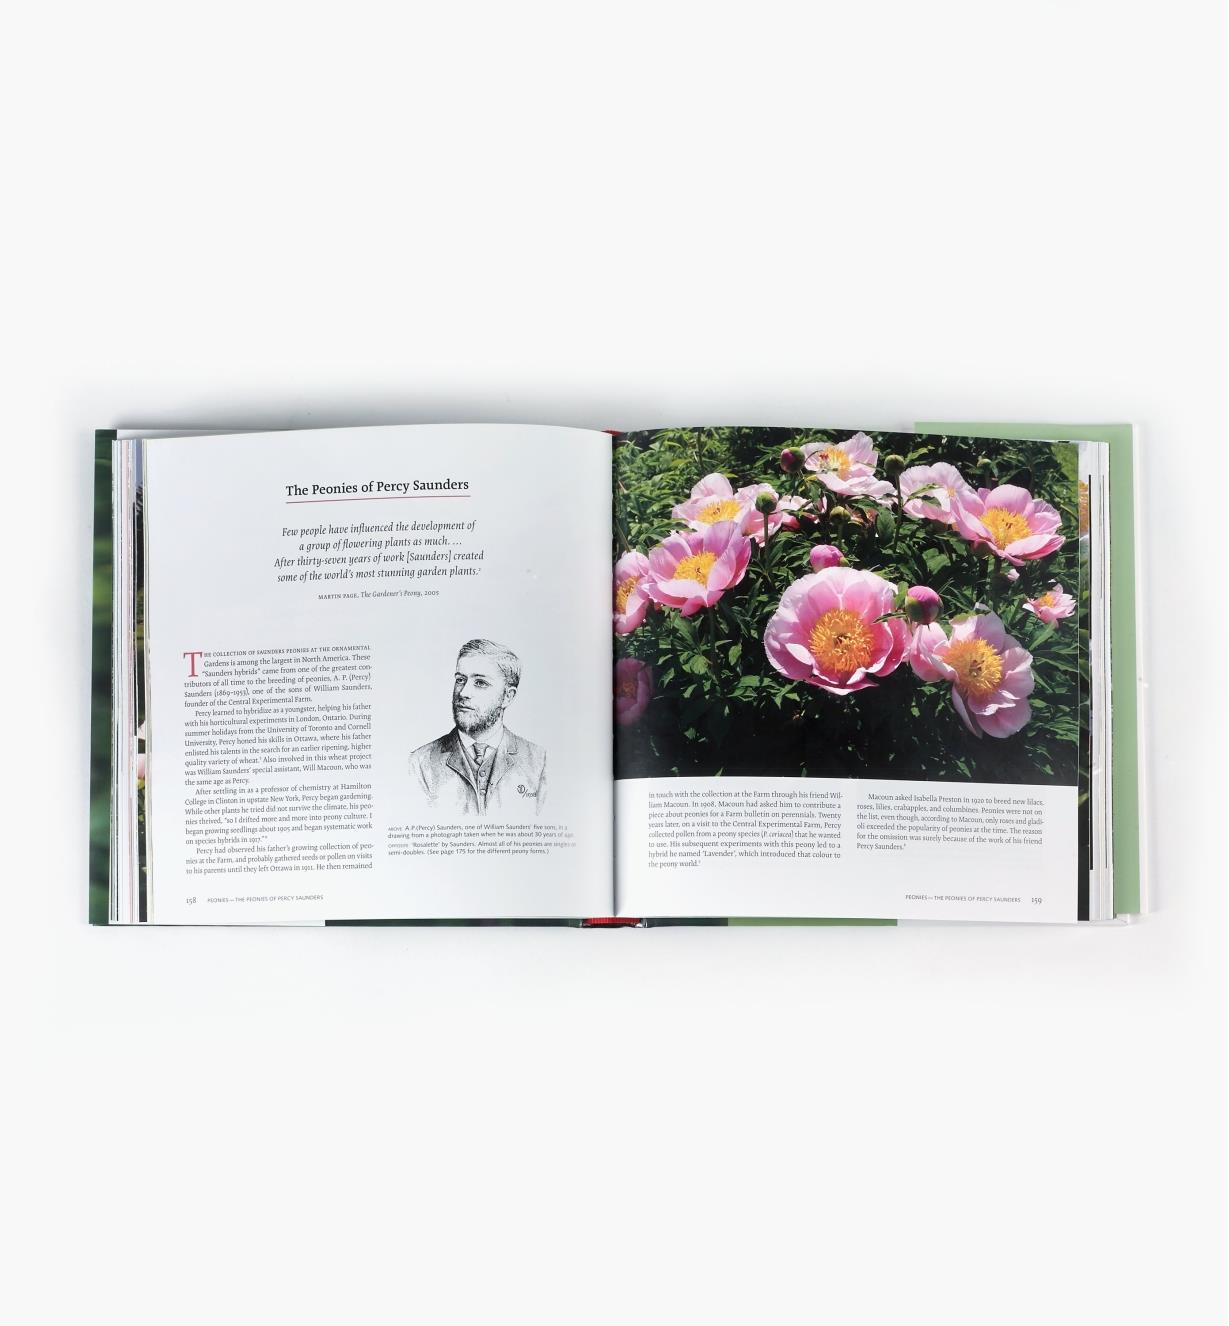 LA543 - Blooms – An Illustrated History of the Ornamental Gardens at Ottawa's Central Experimental Farm